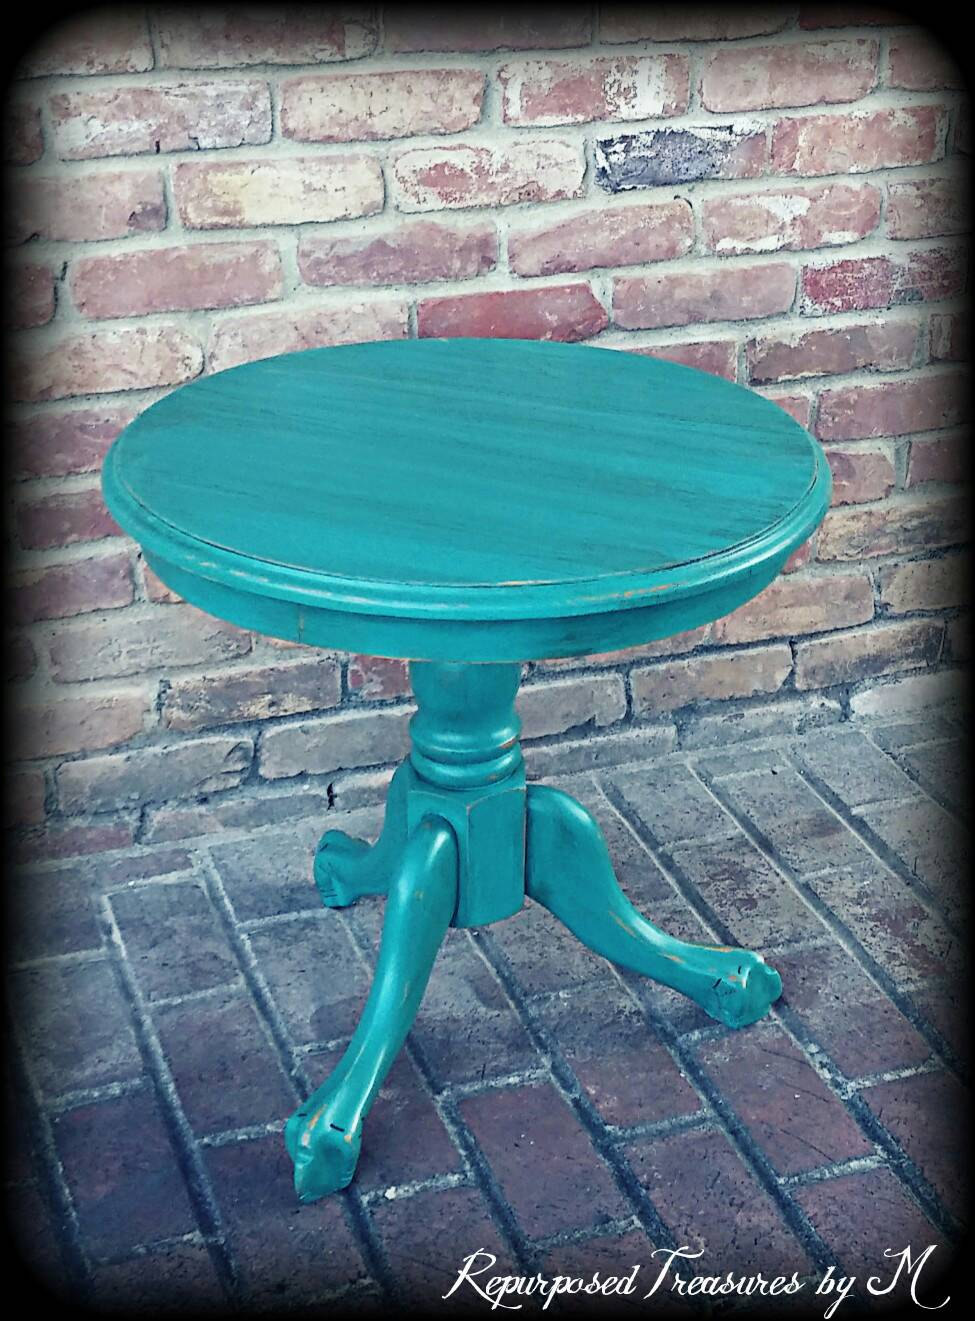 sold vintage accent table turquoise shabby chic etsy fullxfull fvrw teal blue inch bistro hammered metal coffee square lucite bronze glass demilune console tall with stools clear